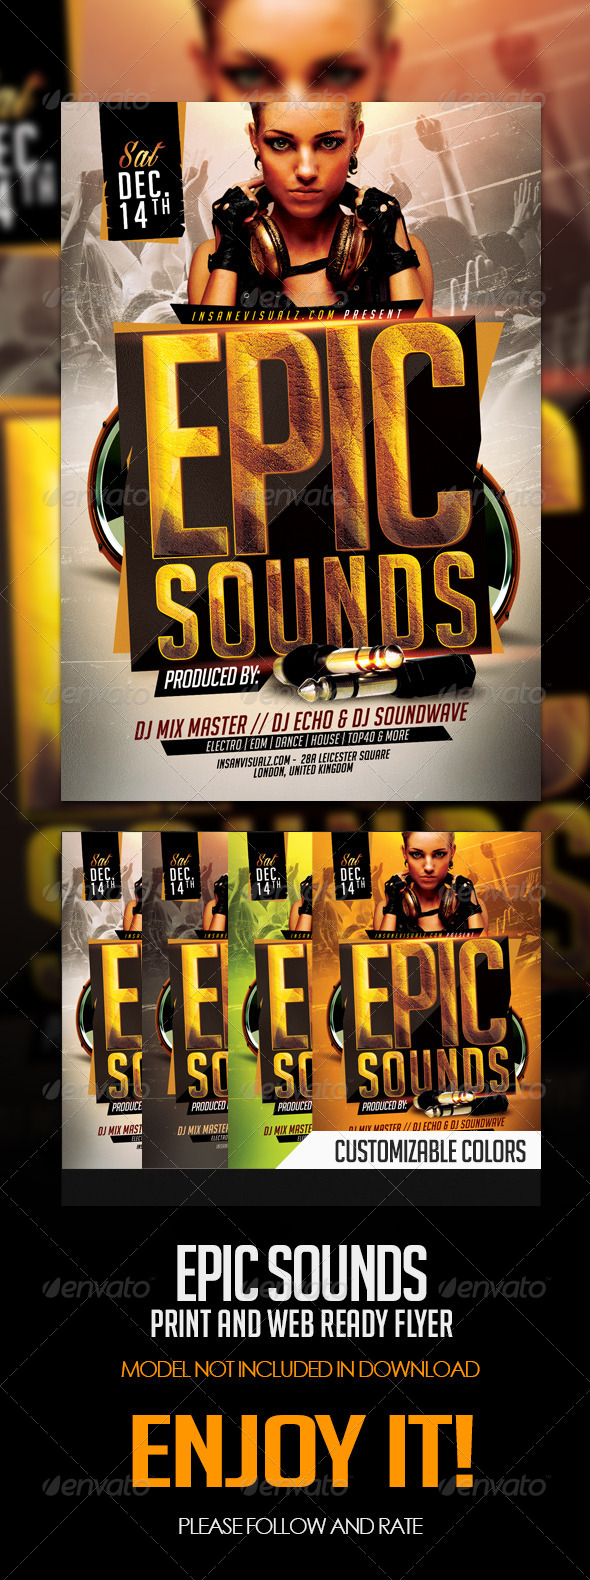 Epic Sounds PSD Flyer Template - Flyers Print Templates